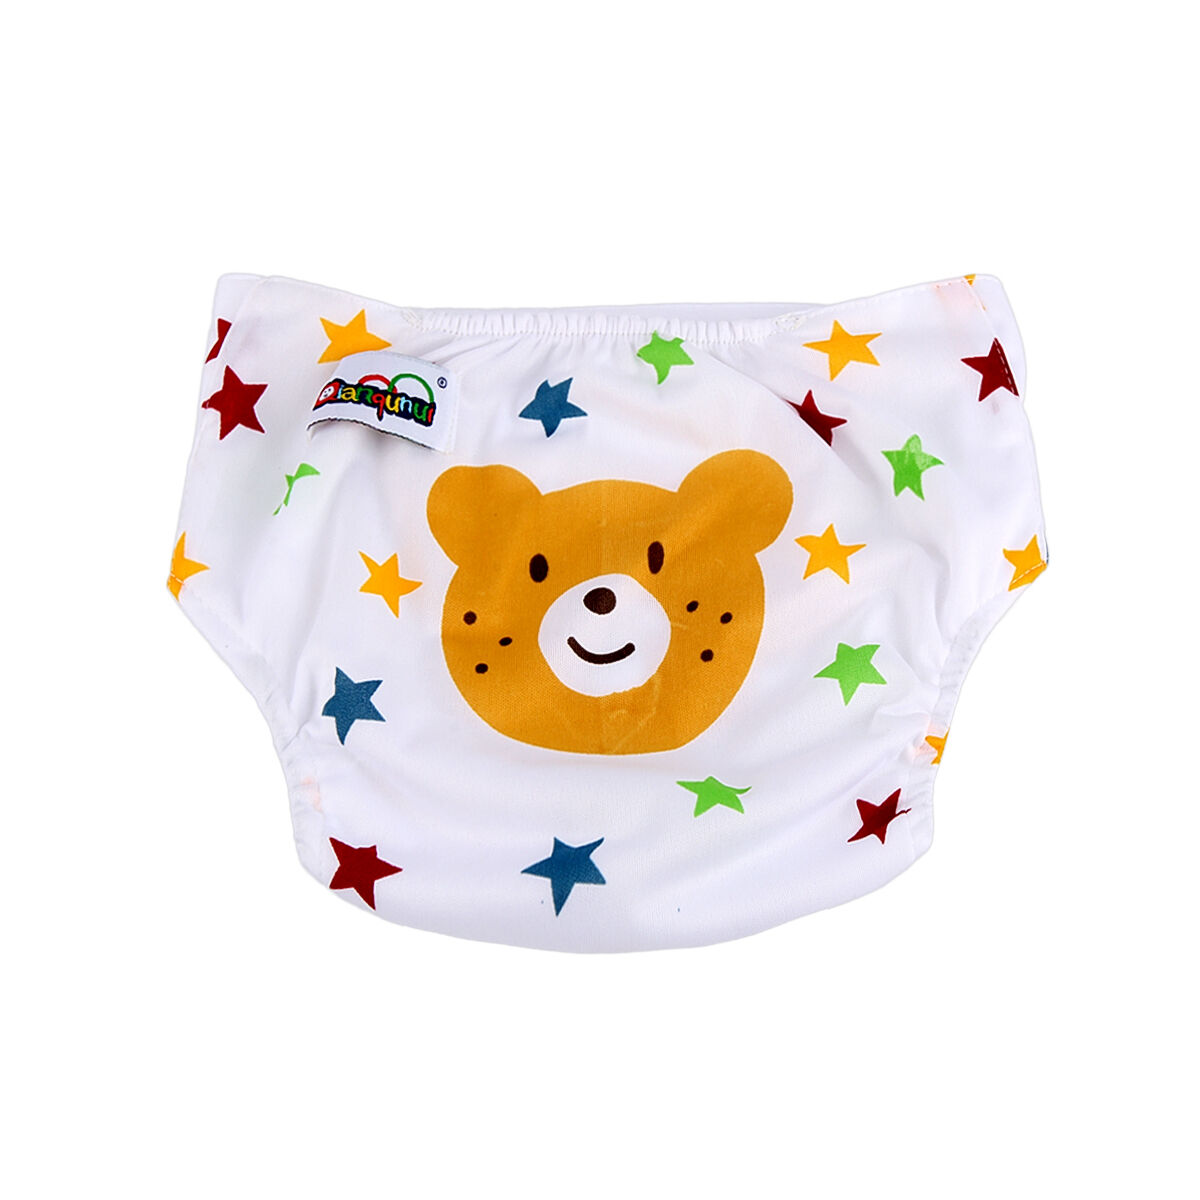 5pcs+ 5INSERT Lovely printing Adjustable Reusable Washable Cloth Diaper Nappies  Bear